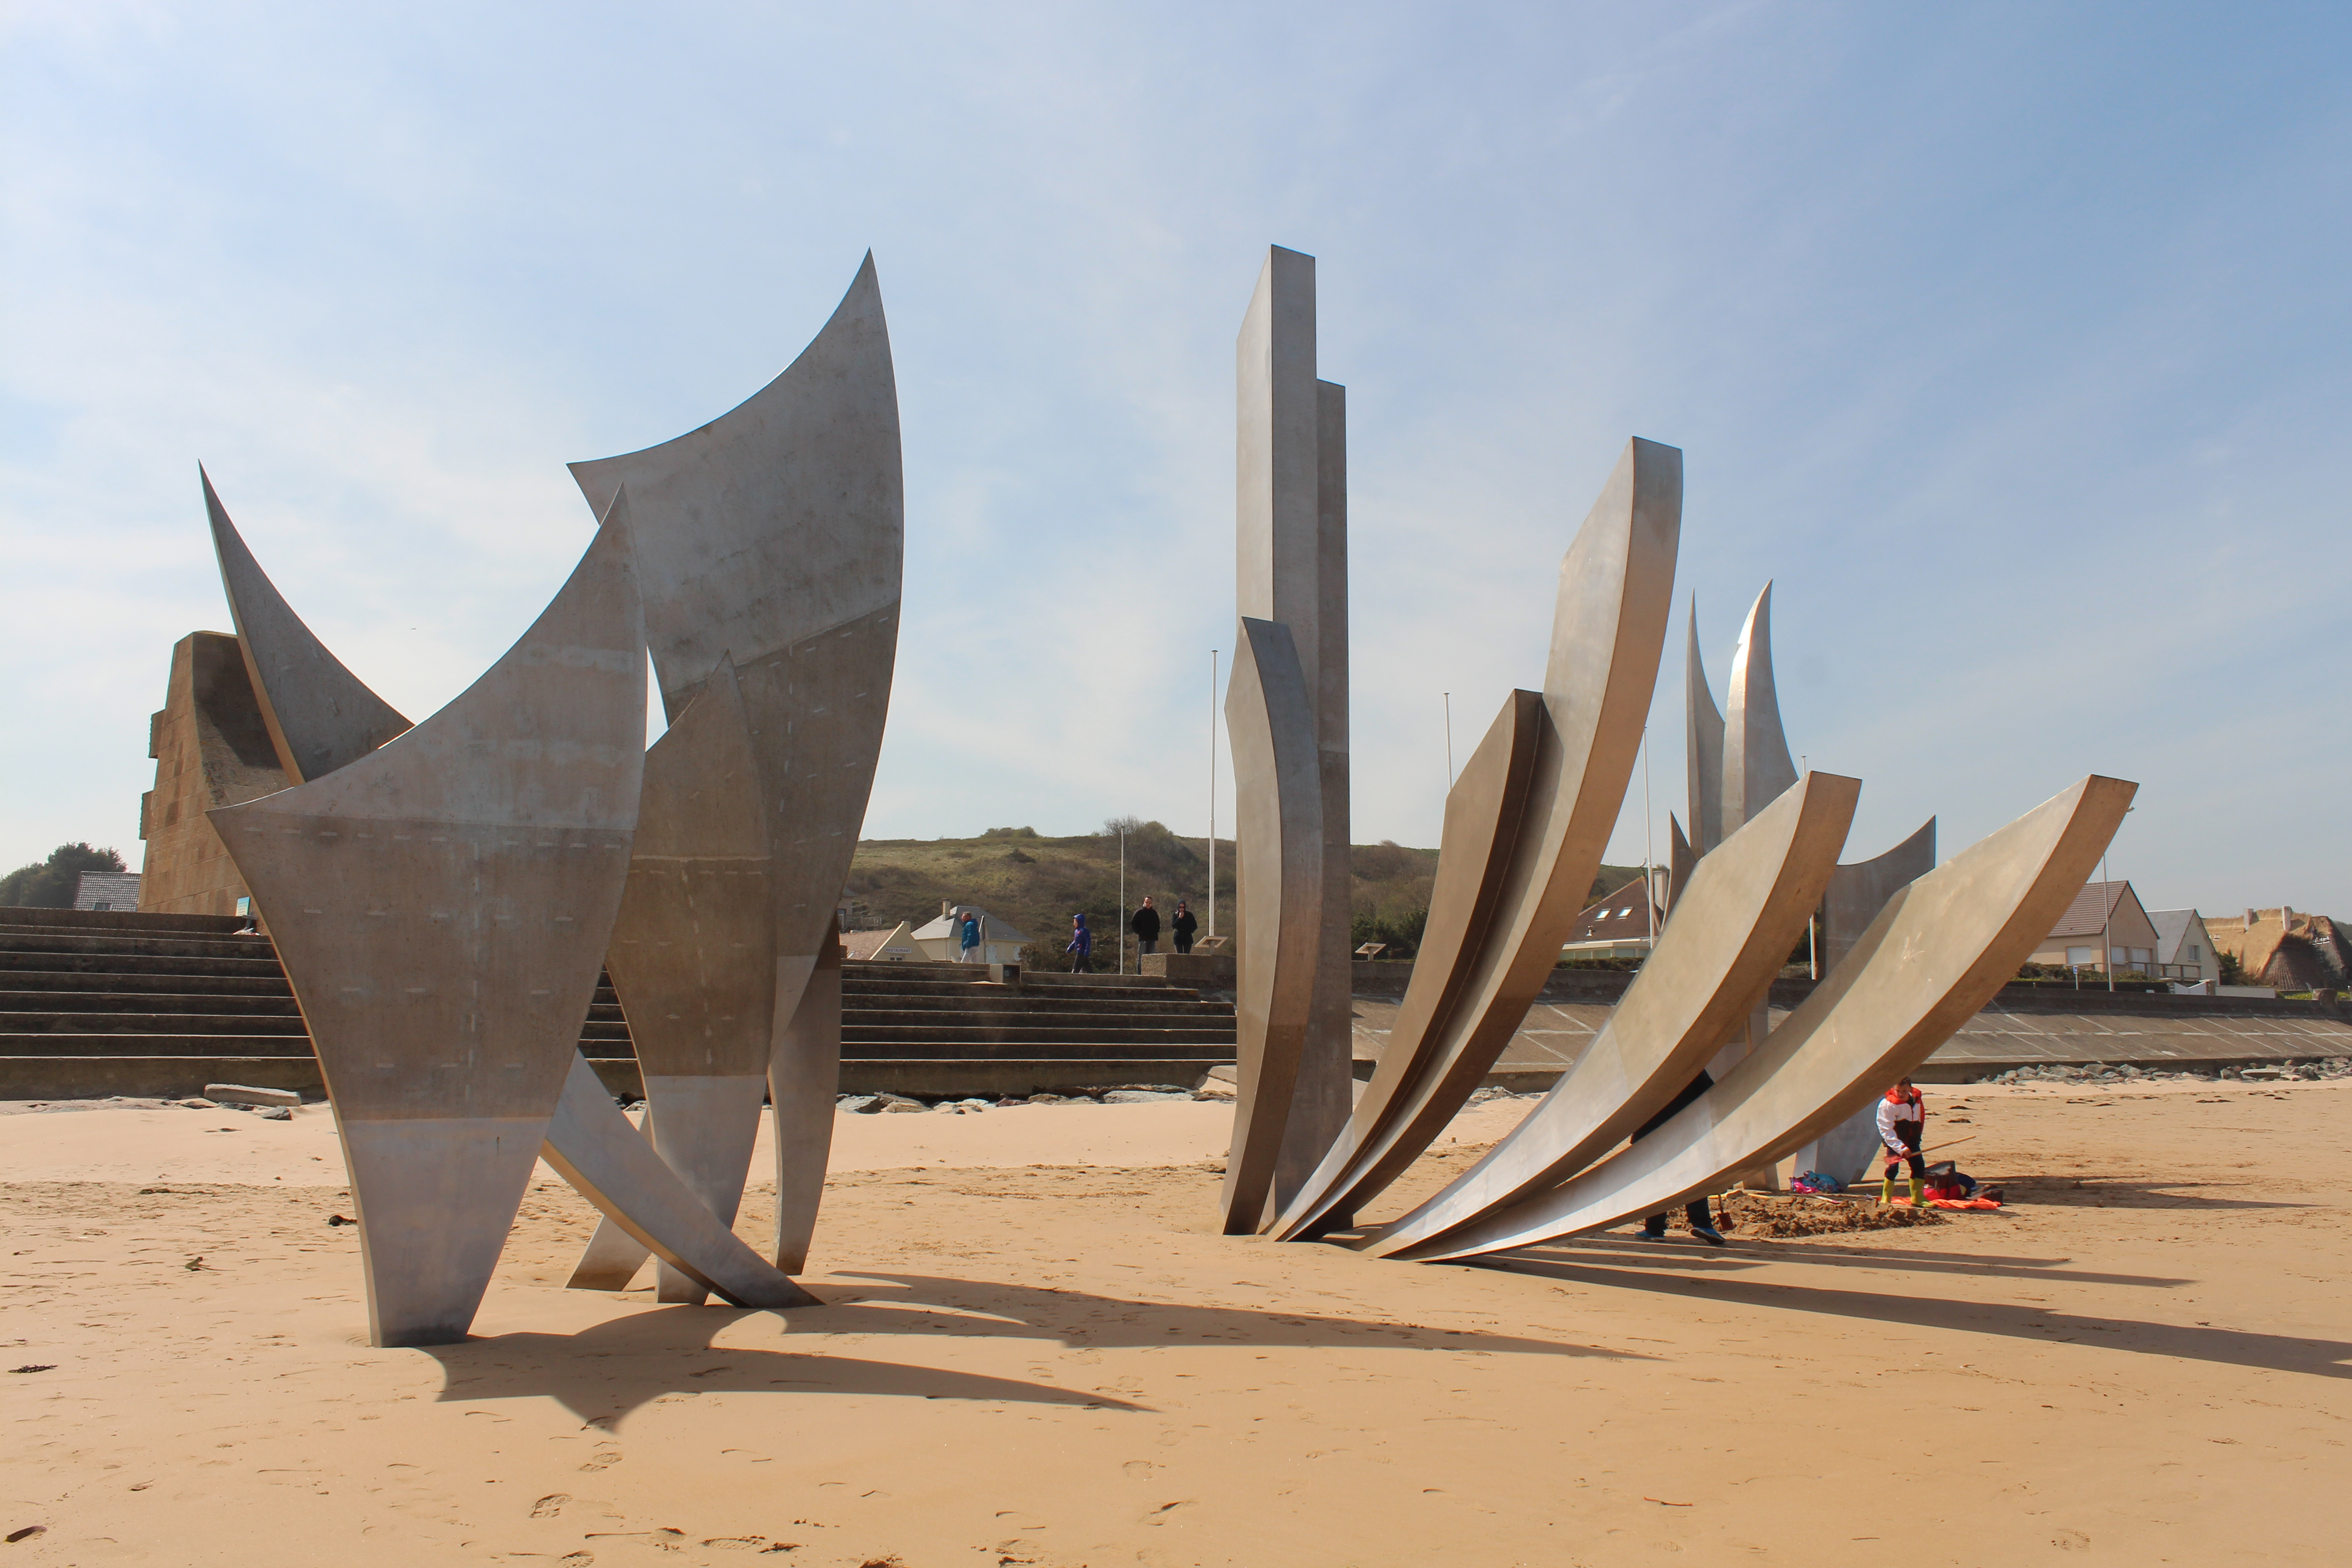 A memorial at Omaha beach which appears to shards rising from the sand.  There is a gap between the shards wide enough for several people to walk through.  A family is having a picnic underneath to the right.